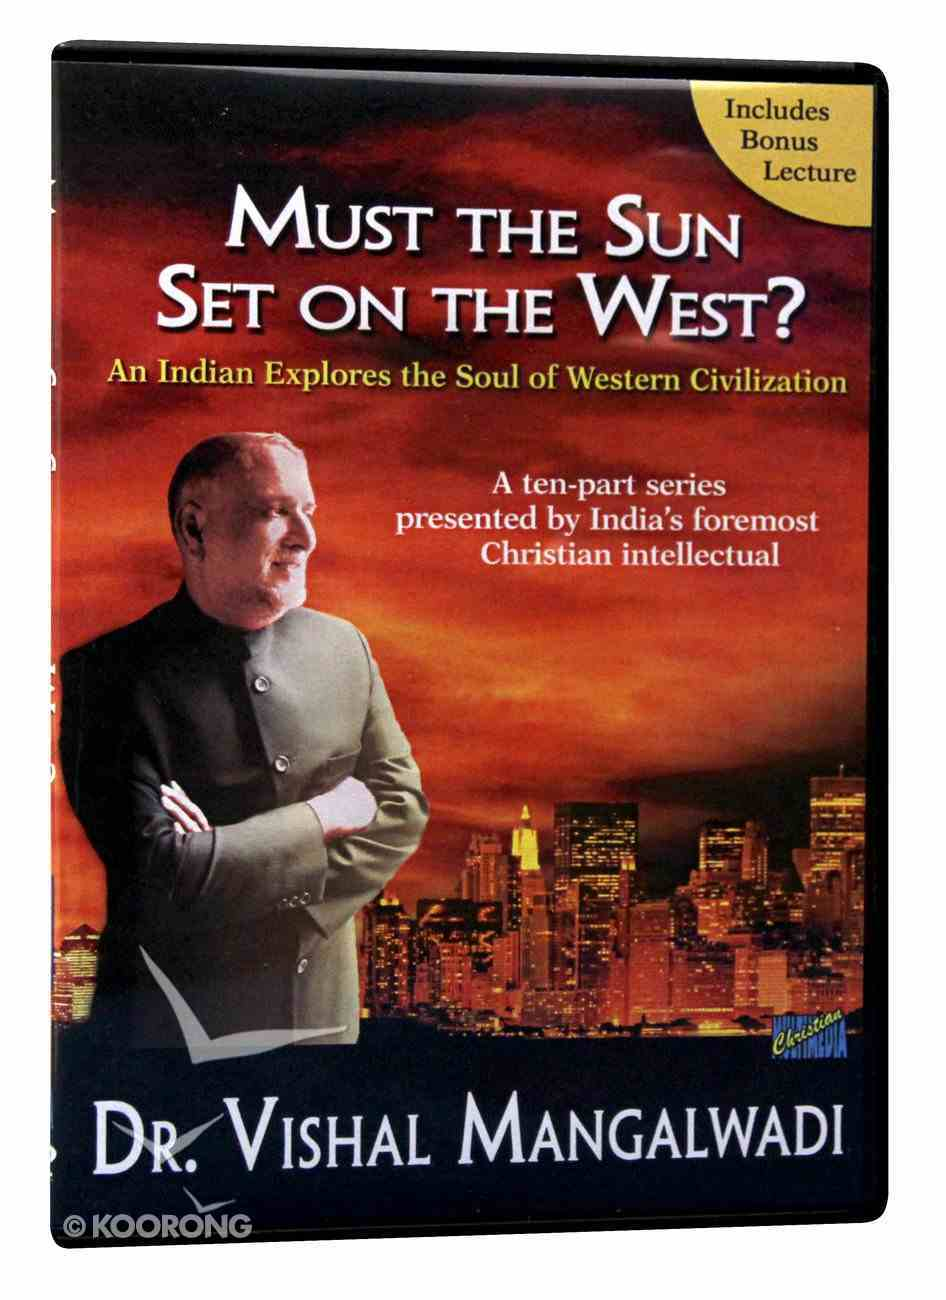 Must the Sun Set on the West? DVD